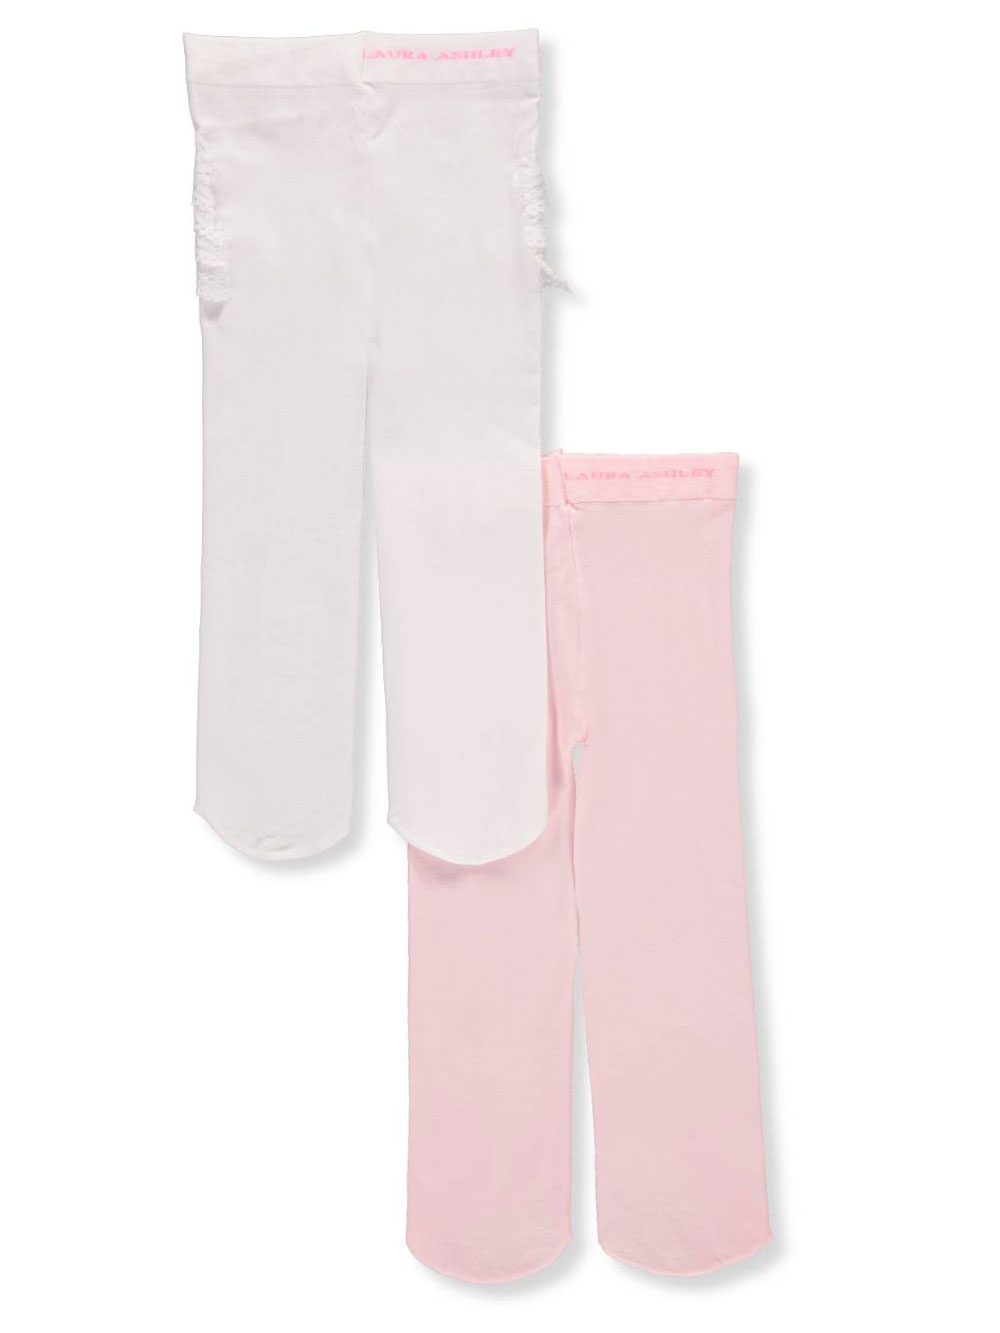 Laura Ashley Baby Girls/' 2-Pack Tights